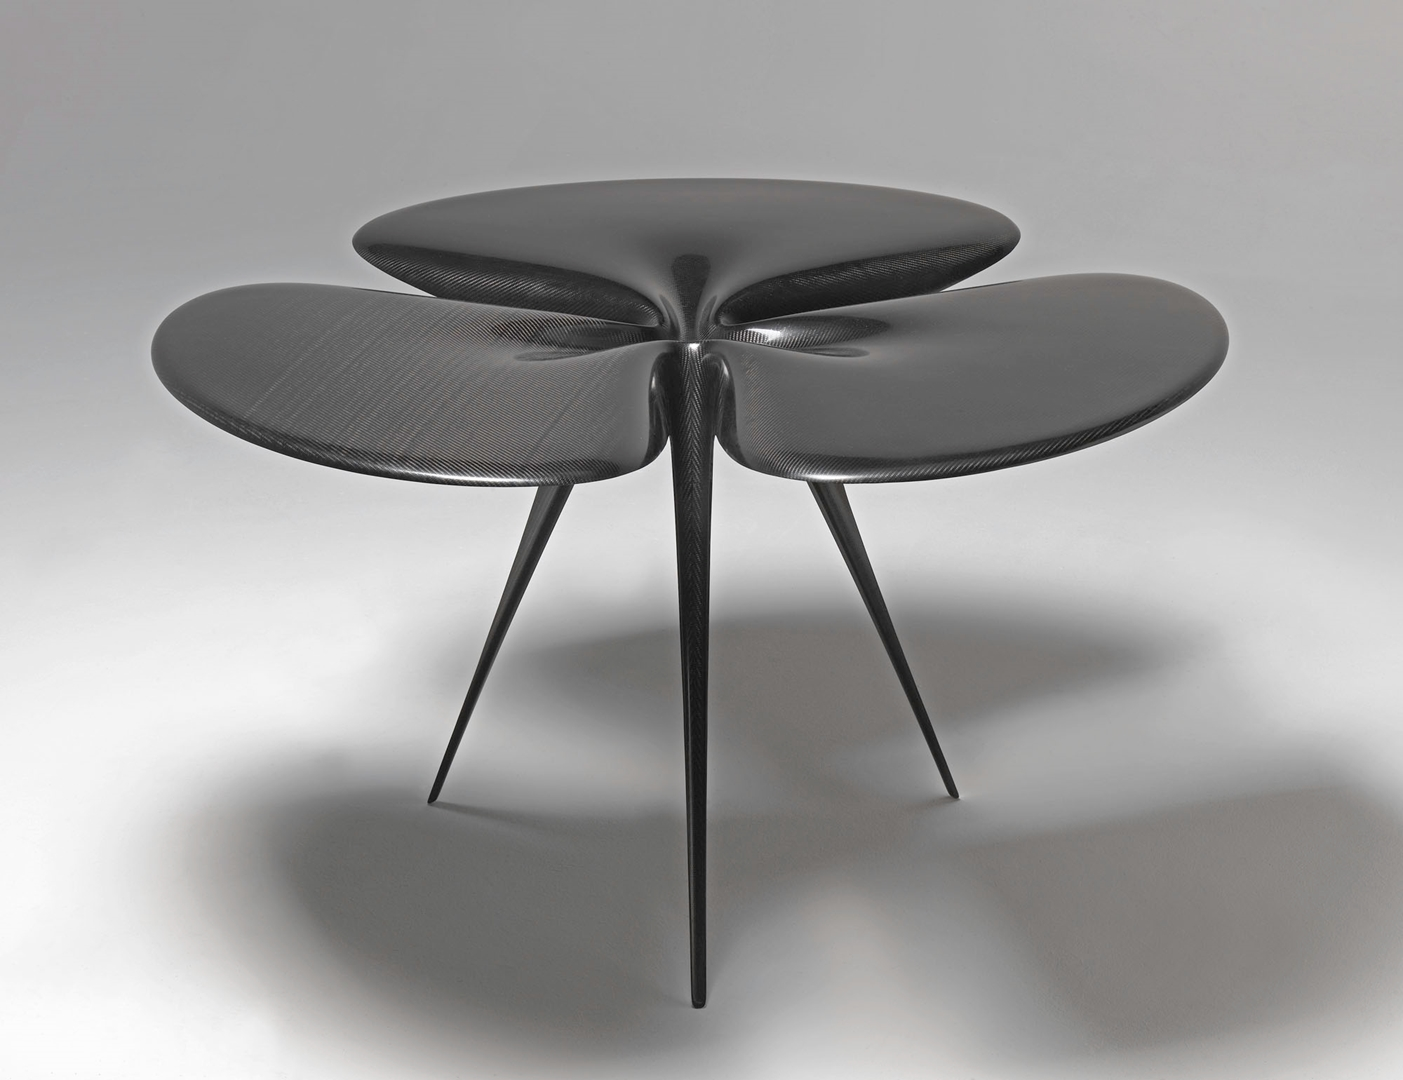 Ross Lovegrove_The Gingko Carbon Table_ 2007_Fibre de carbone Lovegrove Research Coll. Centre Pompidou (Copy)